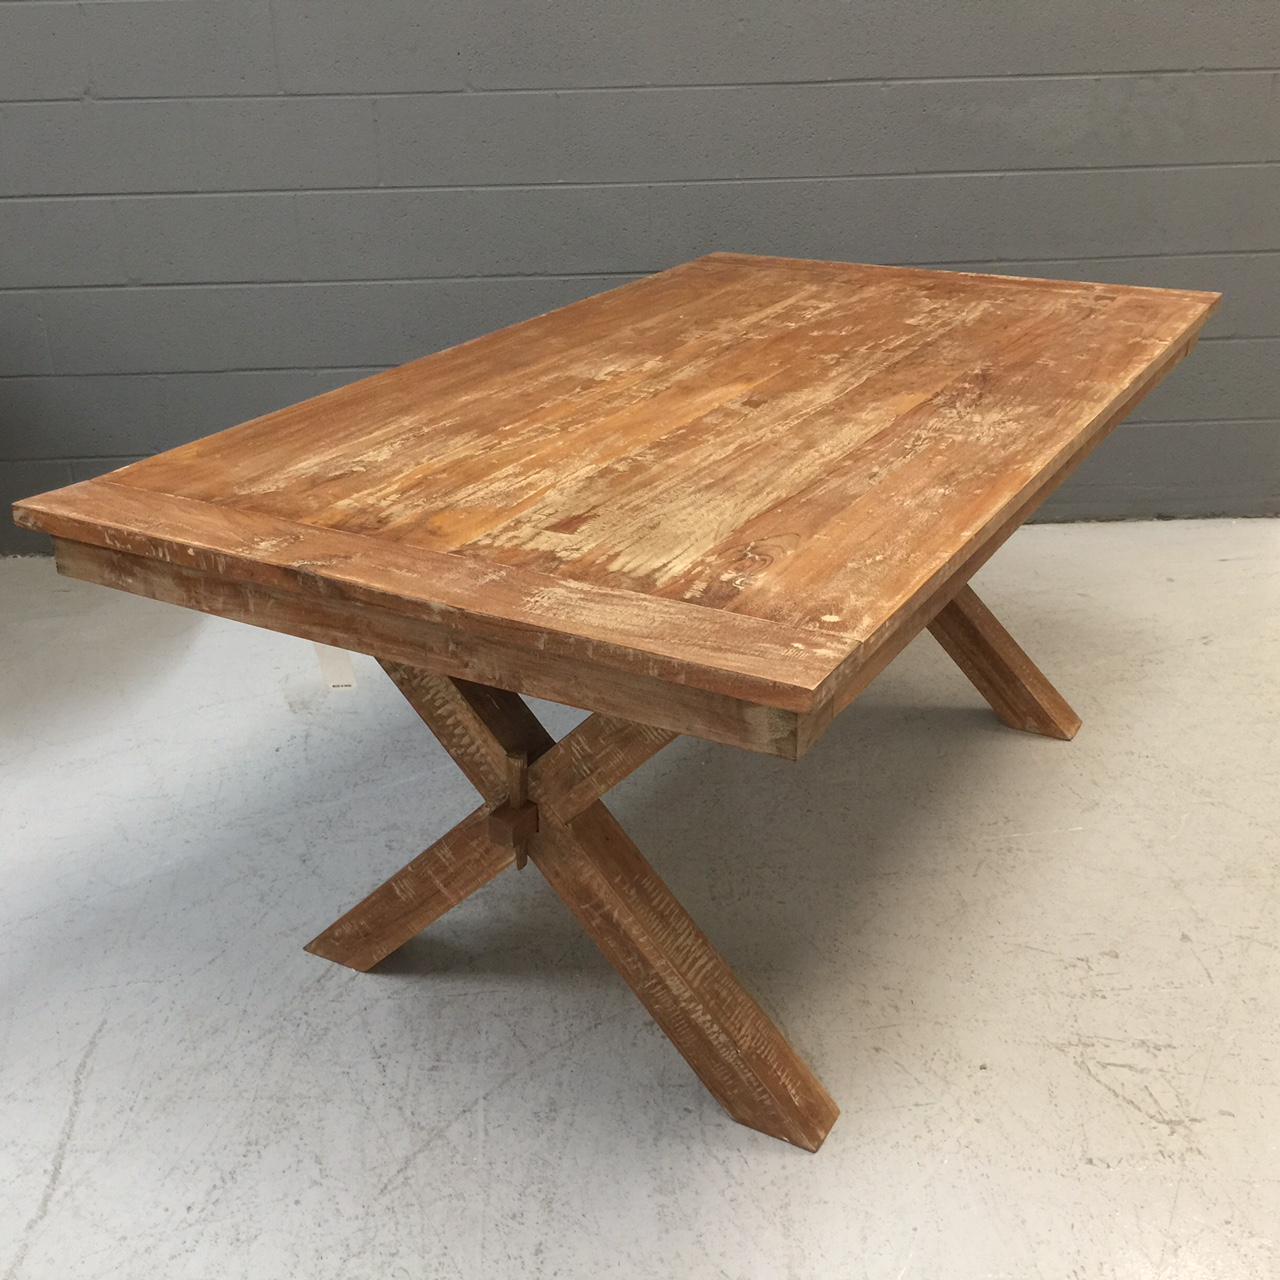 Cross leg dining table nadeau nashville for Dining table nashville tn